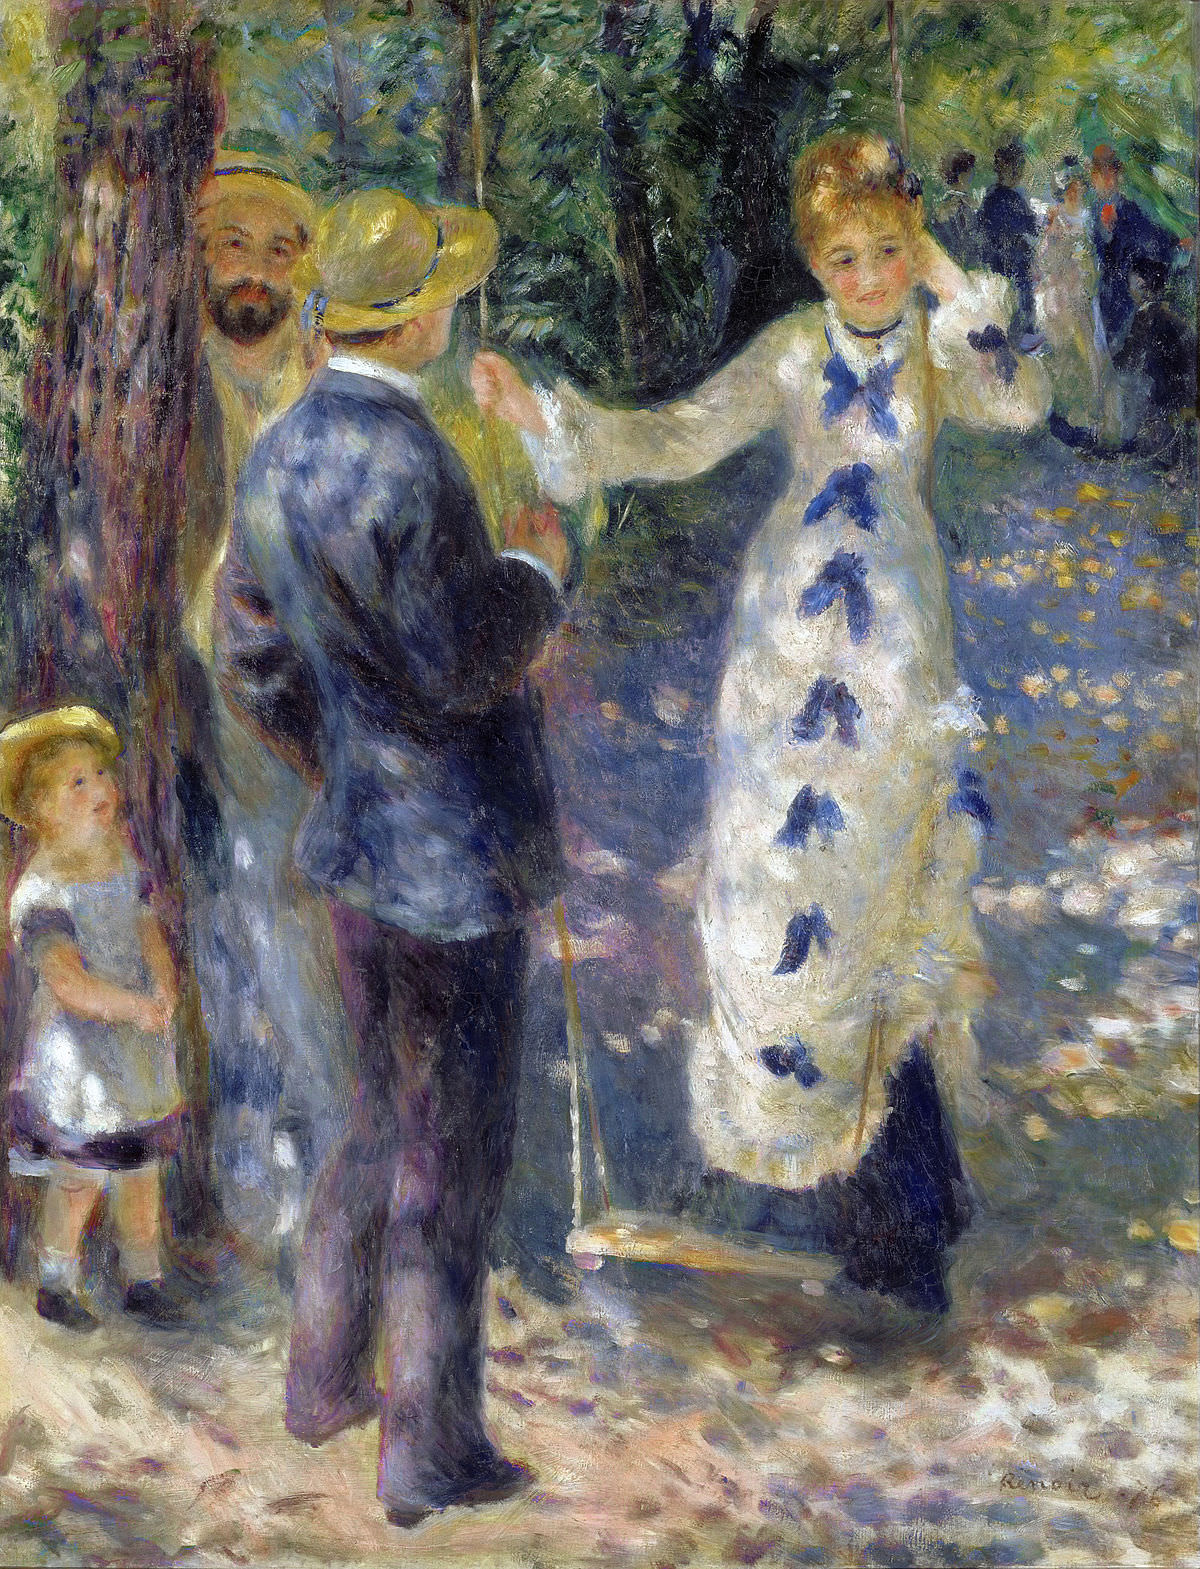 The Swing - by Renoir